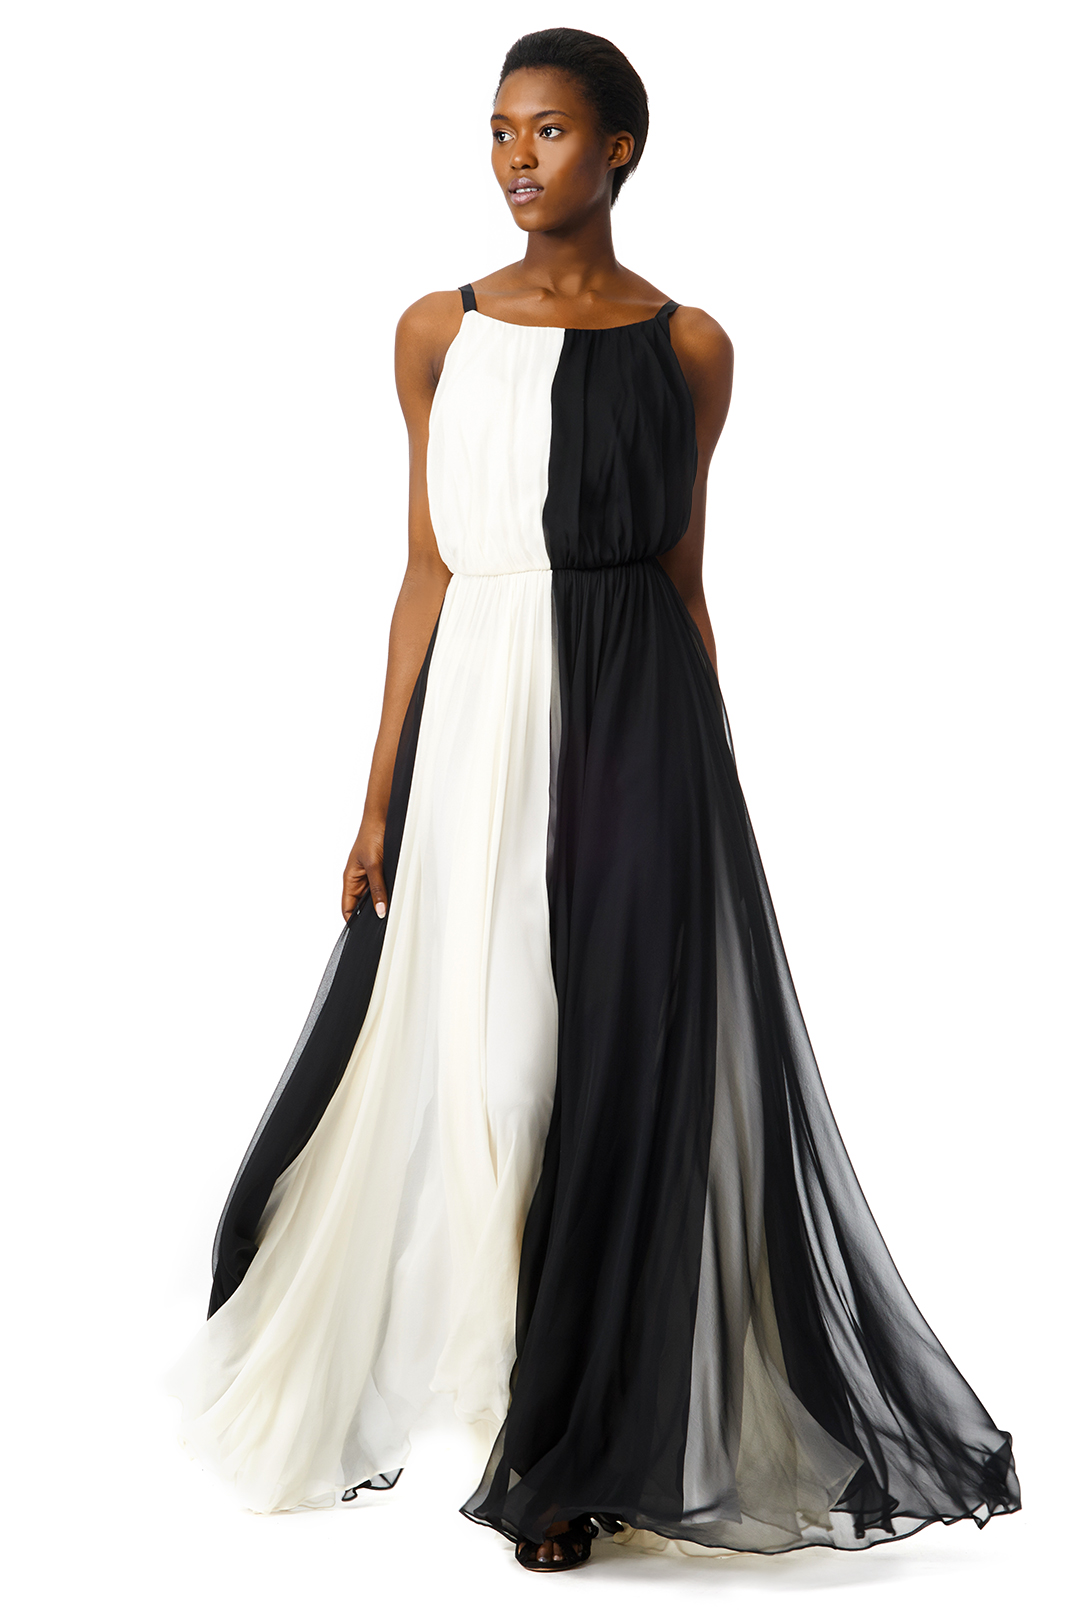 mom couture dressing the mothers of the bride and groom charleston wedding design atlanta wedding design new york wedding design mothers dress for wedding dressing the mothers of the bride and groom scarlet plan design